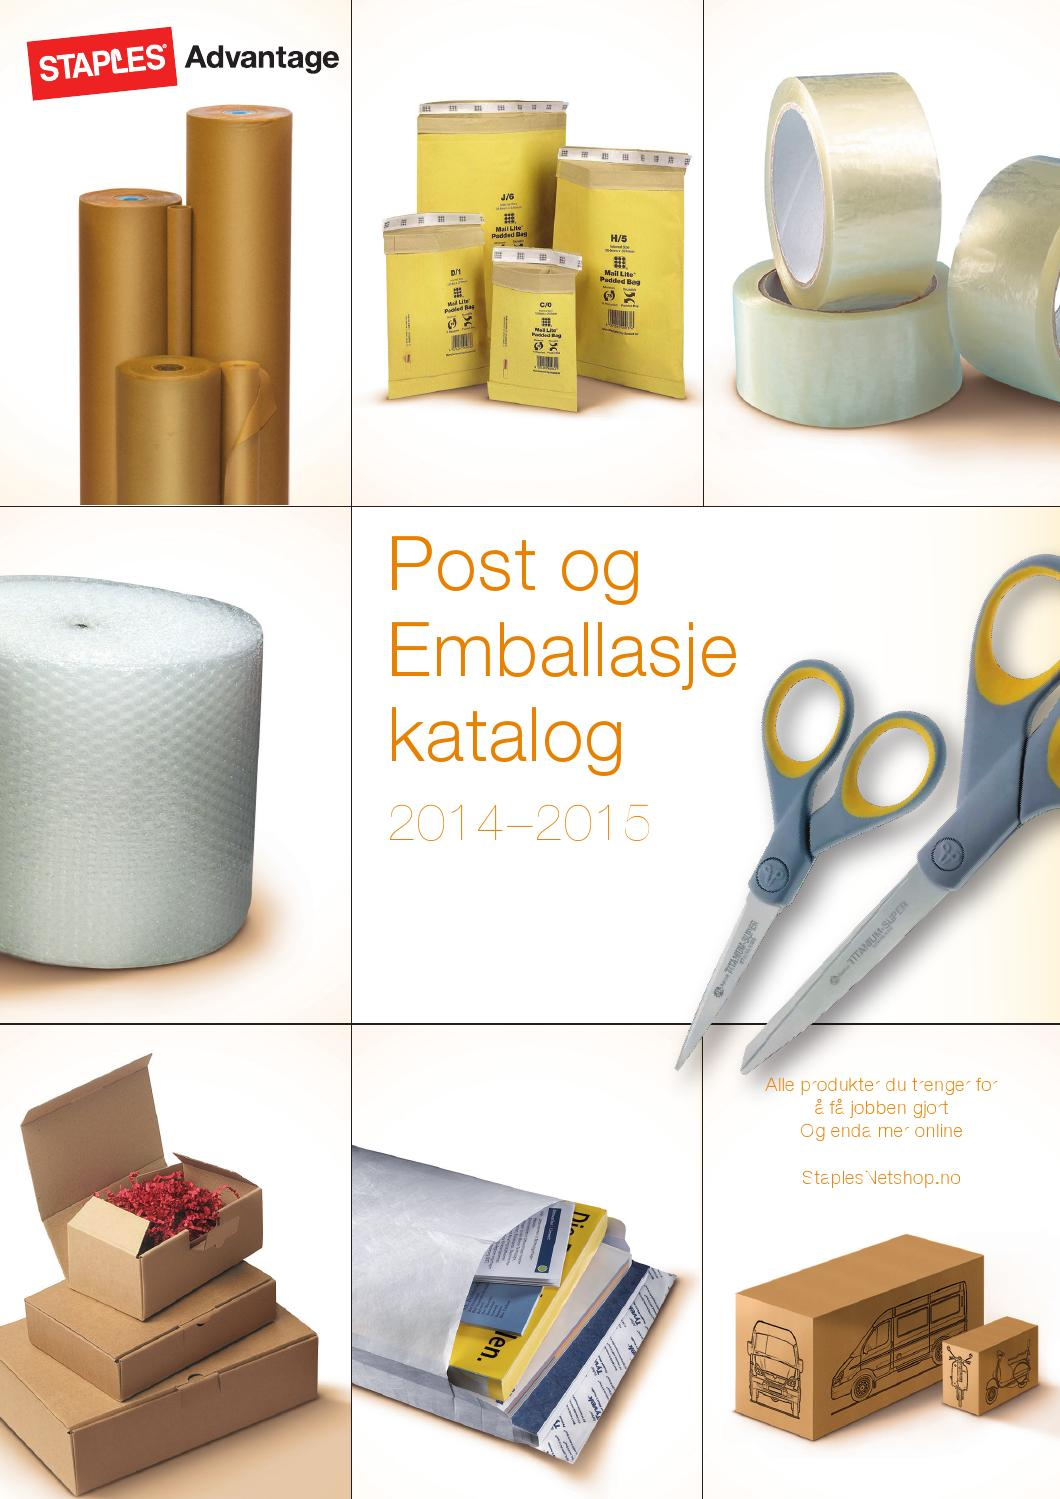 post og emballasje katalog 2014 2015 by staples advantage. Black Bedroom Furniture Sets. Home Design Ideas